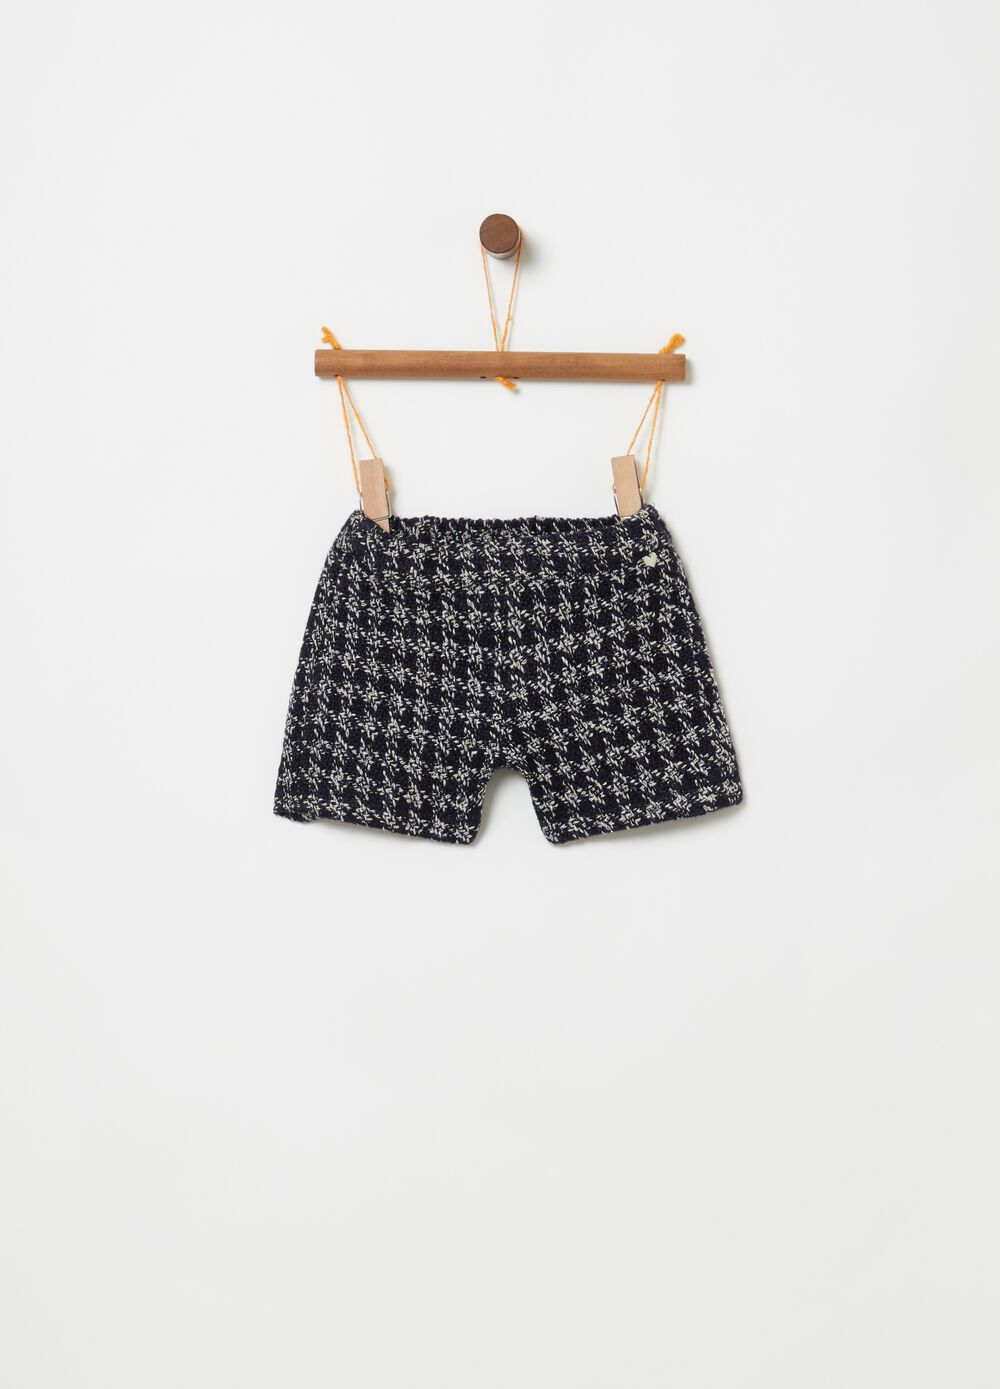 Shorts with hounds' tooth pattern